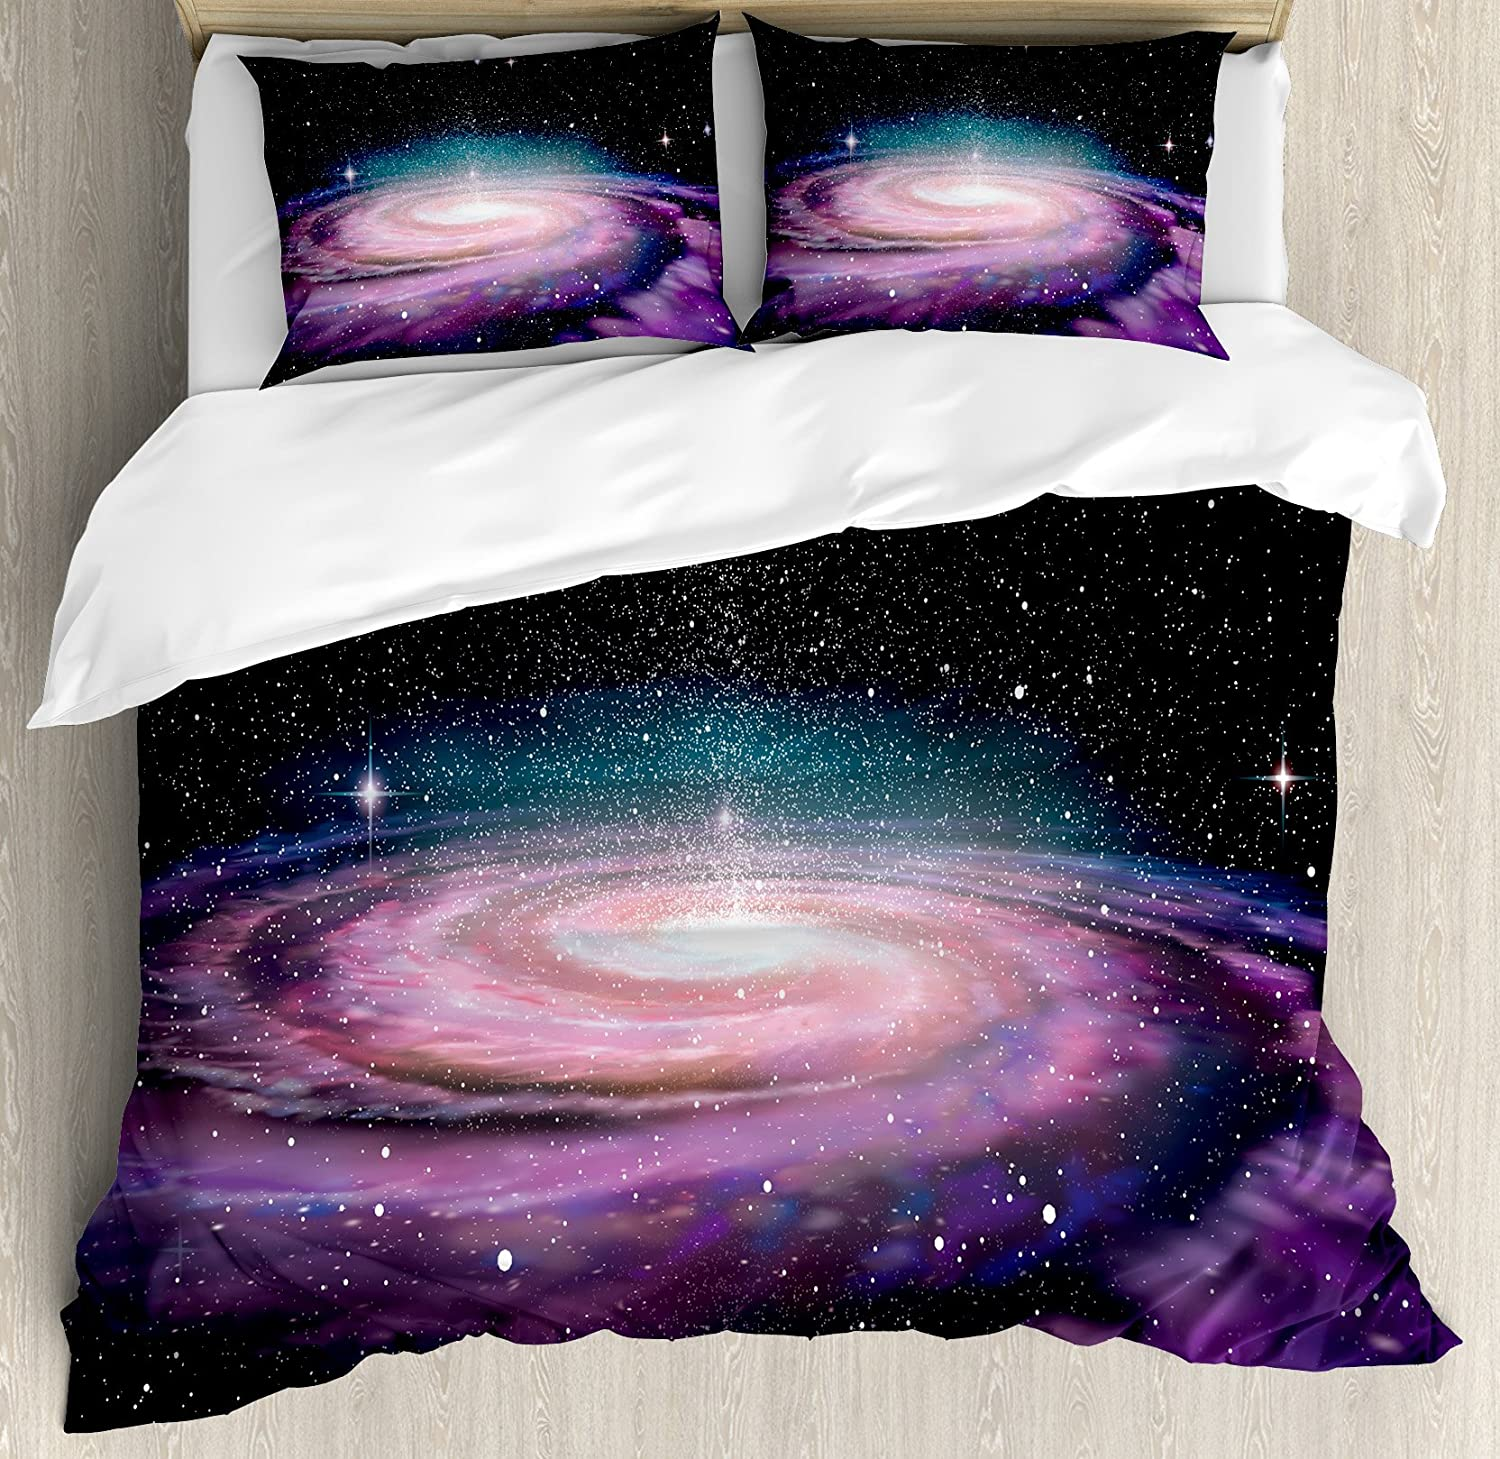 Galaxy Quilted Bedspread /& Pillow Shams Set Spiral Space Universe Print